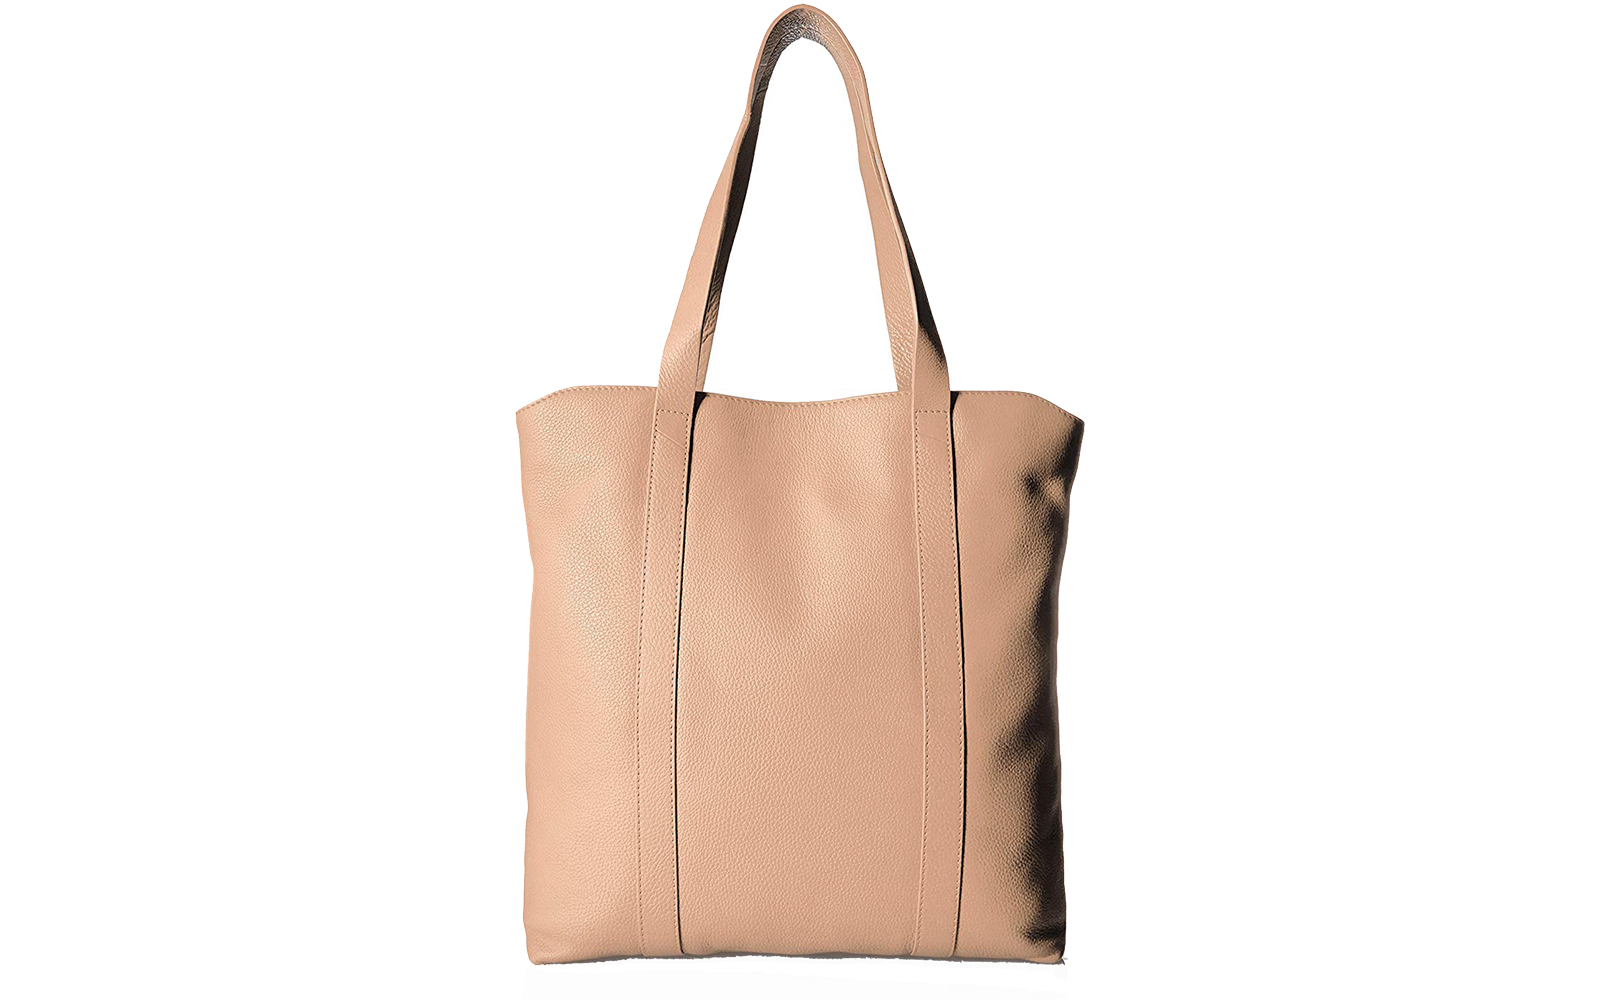 The Fix Leather Travel Tote Bag